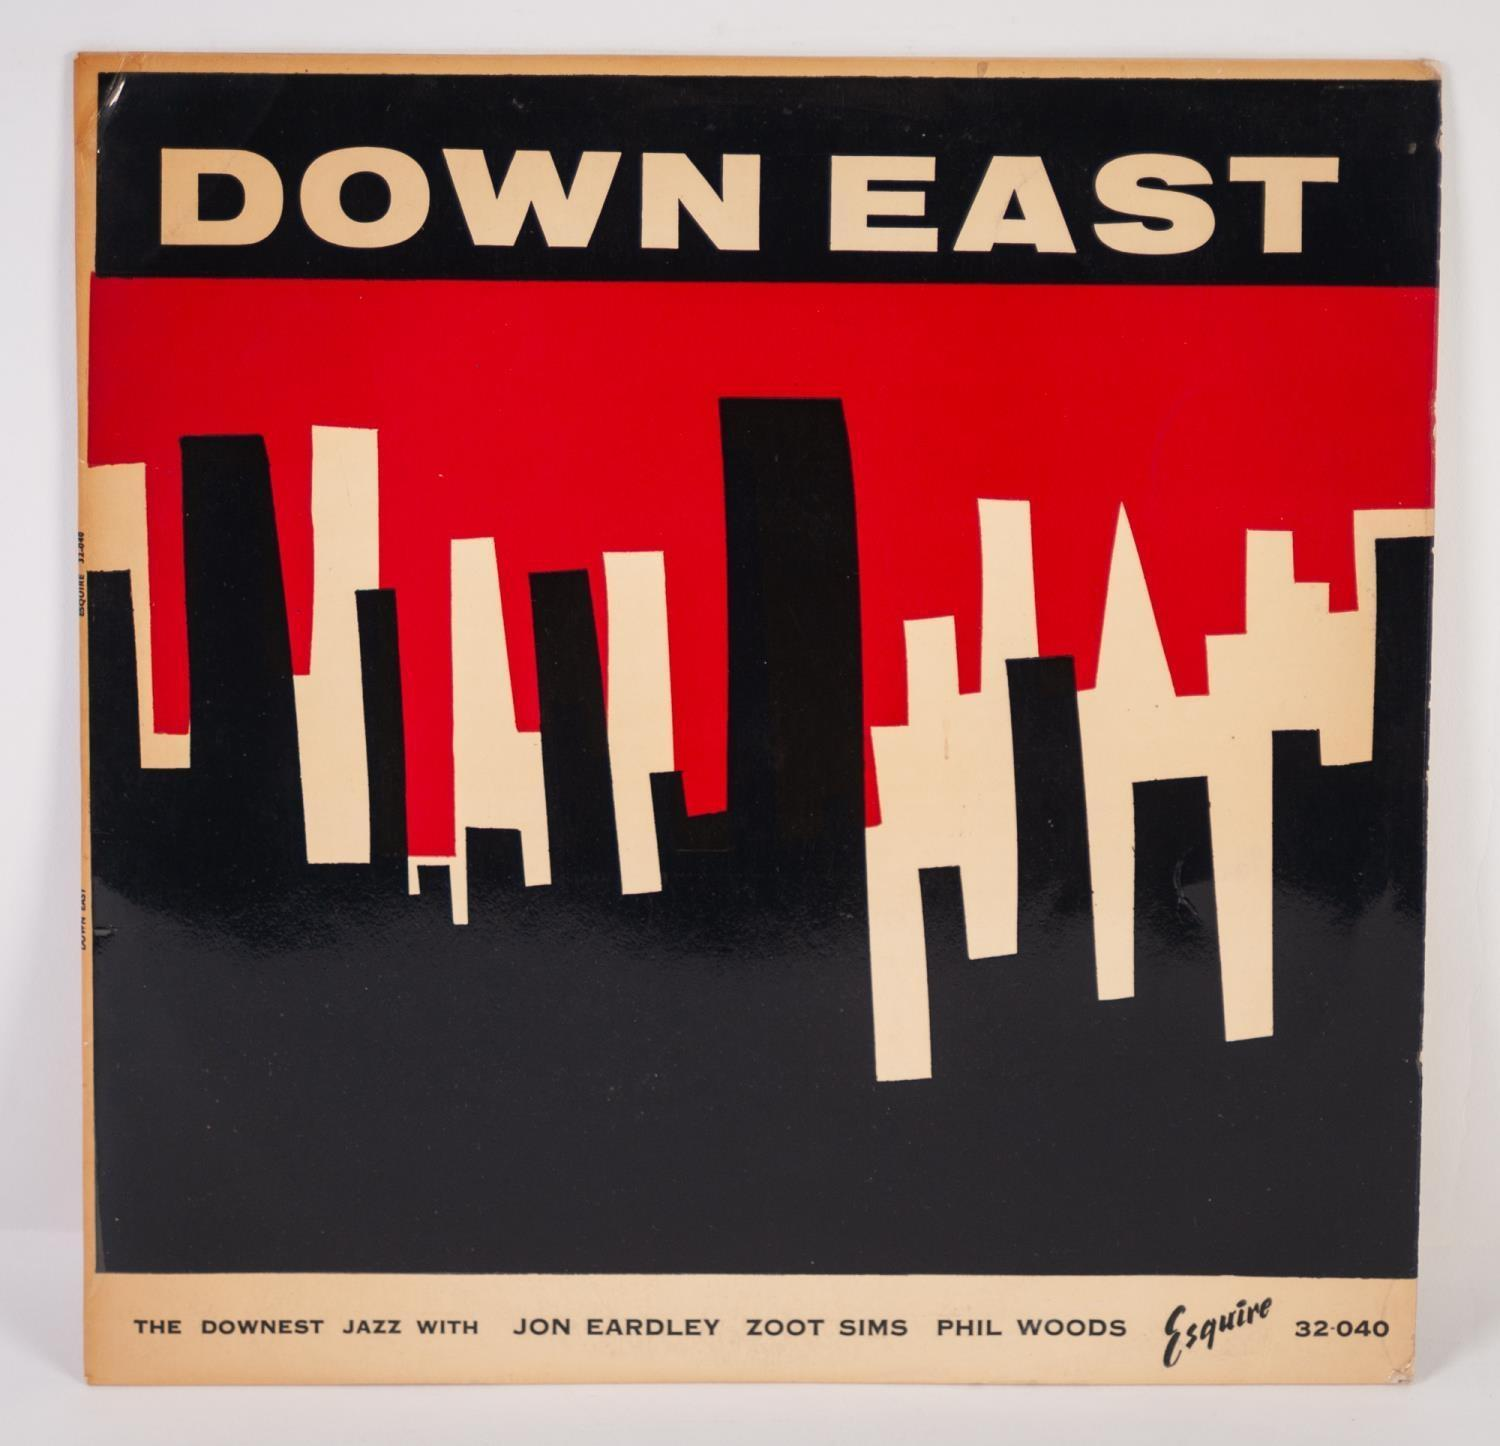 JAZZ, VINYL RECORDS- E IS FOR JON EARDLEY SEVEN-DOWN EAST, THE DOWNEST JAZZ WITH JON EARDLEY, ZOOT